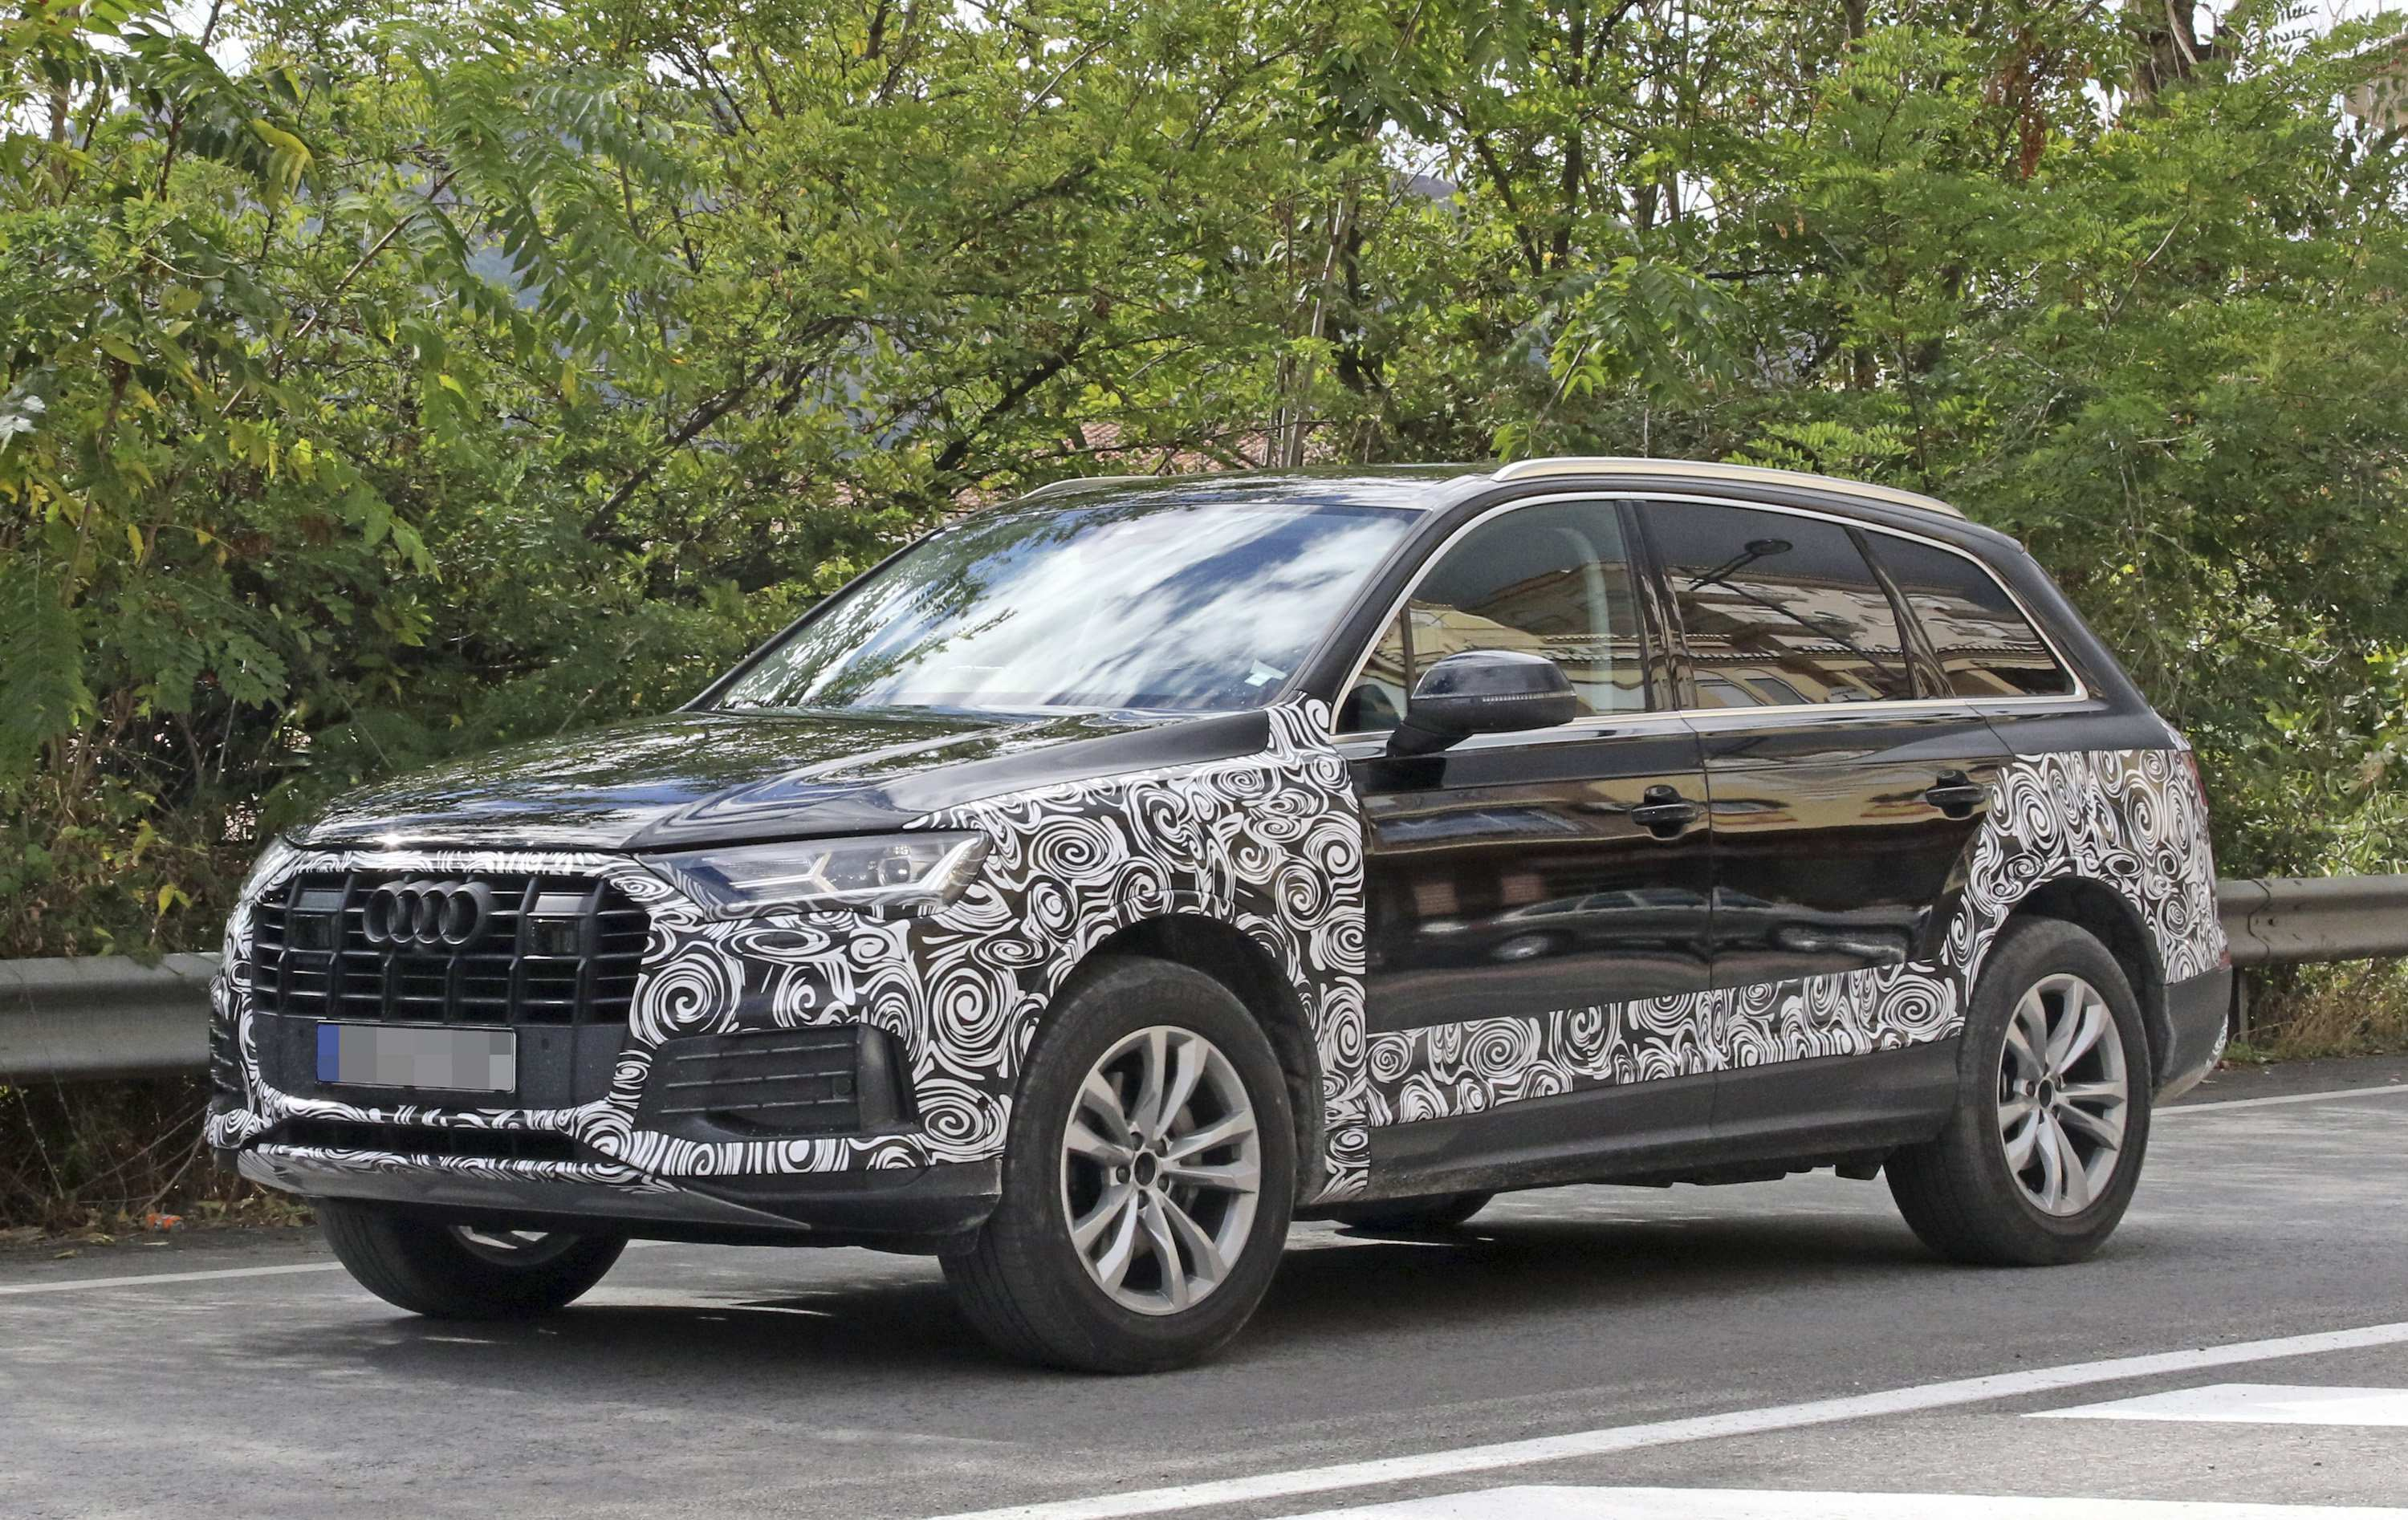 93 Gallery of 2019 Audi Q7 Facelift Pricing for 2019 Audi Q7 Facelift